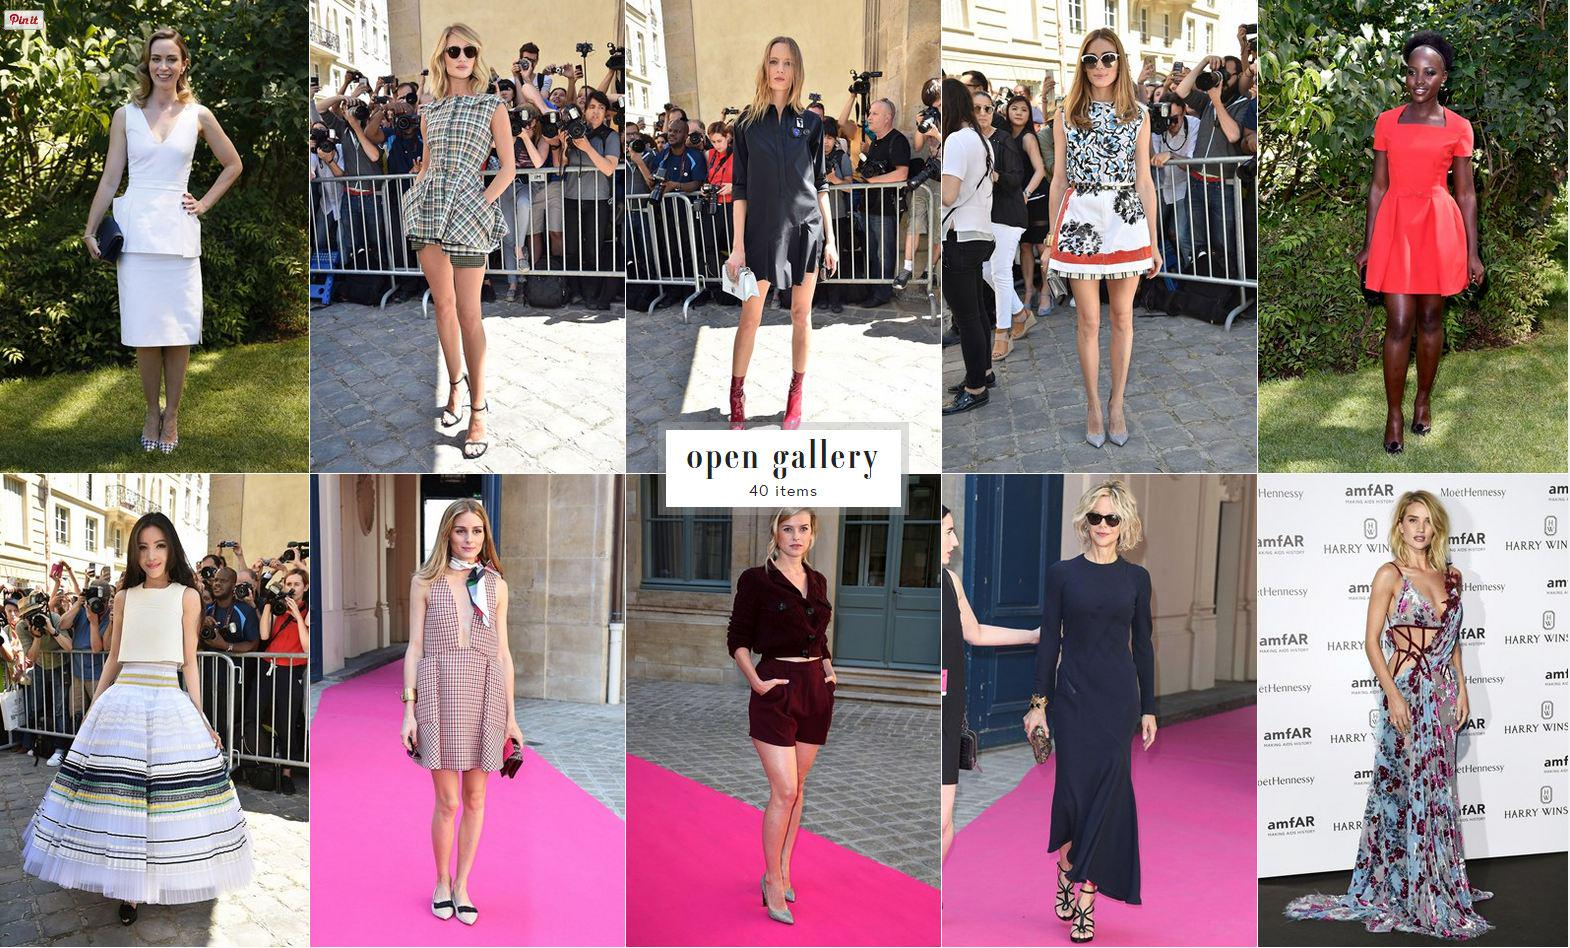 Today at #Couture: from @Lupita_Nyongo at Dior to @TheRealOliviaP at @schiaparelli http://t.co/YSKSEBFcQi http://t.co/99BHtMRwPh